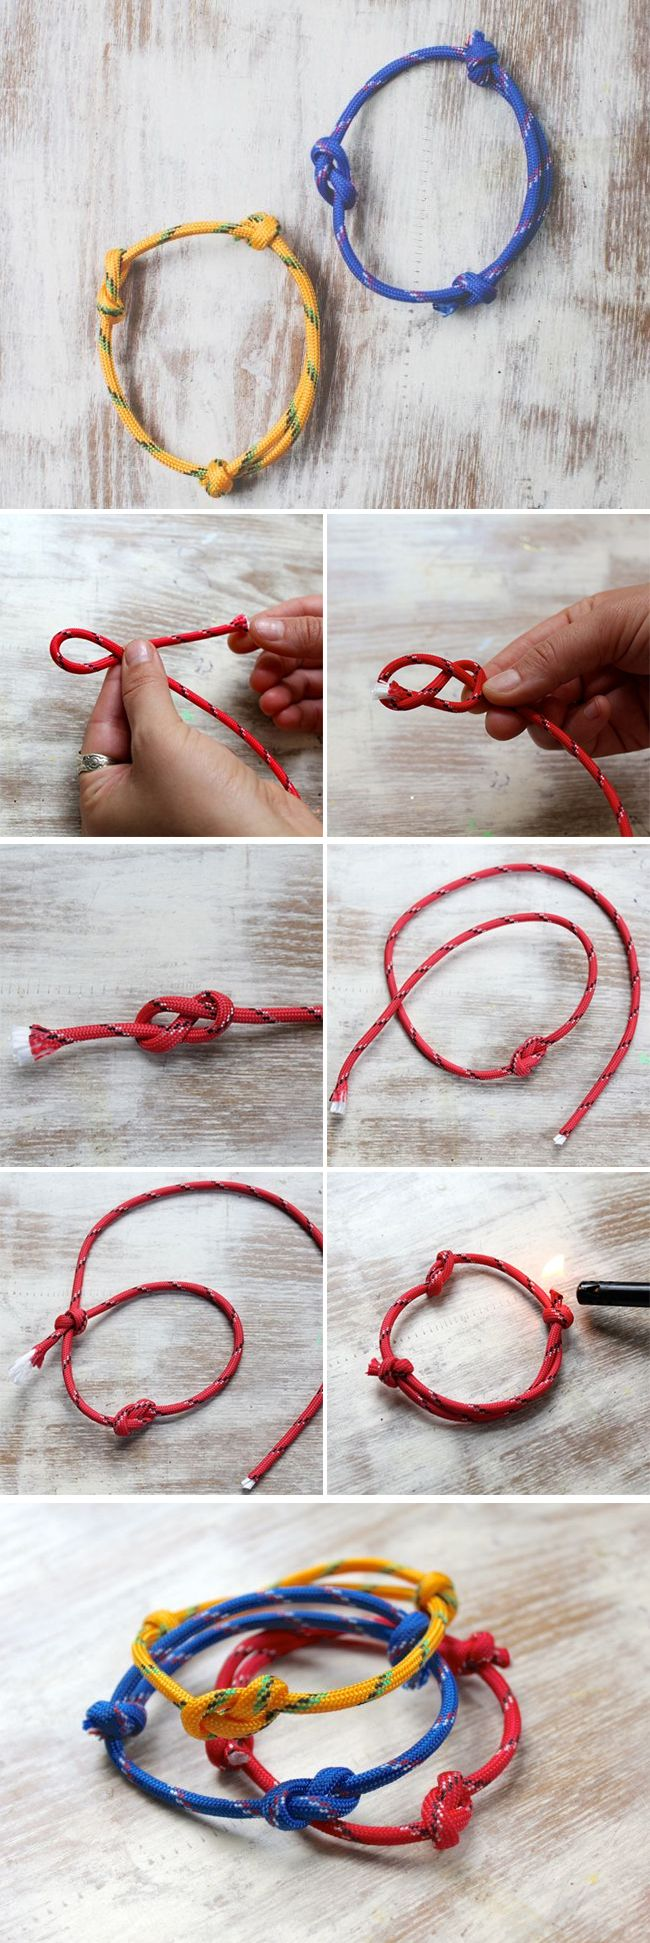 DIY 3 Last Minute Rope Bracelets for Dad   HelloNatural.co